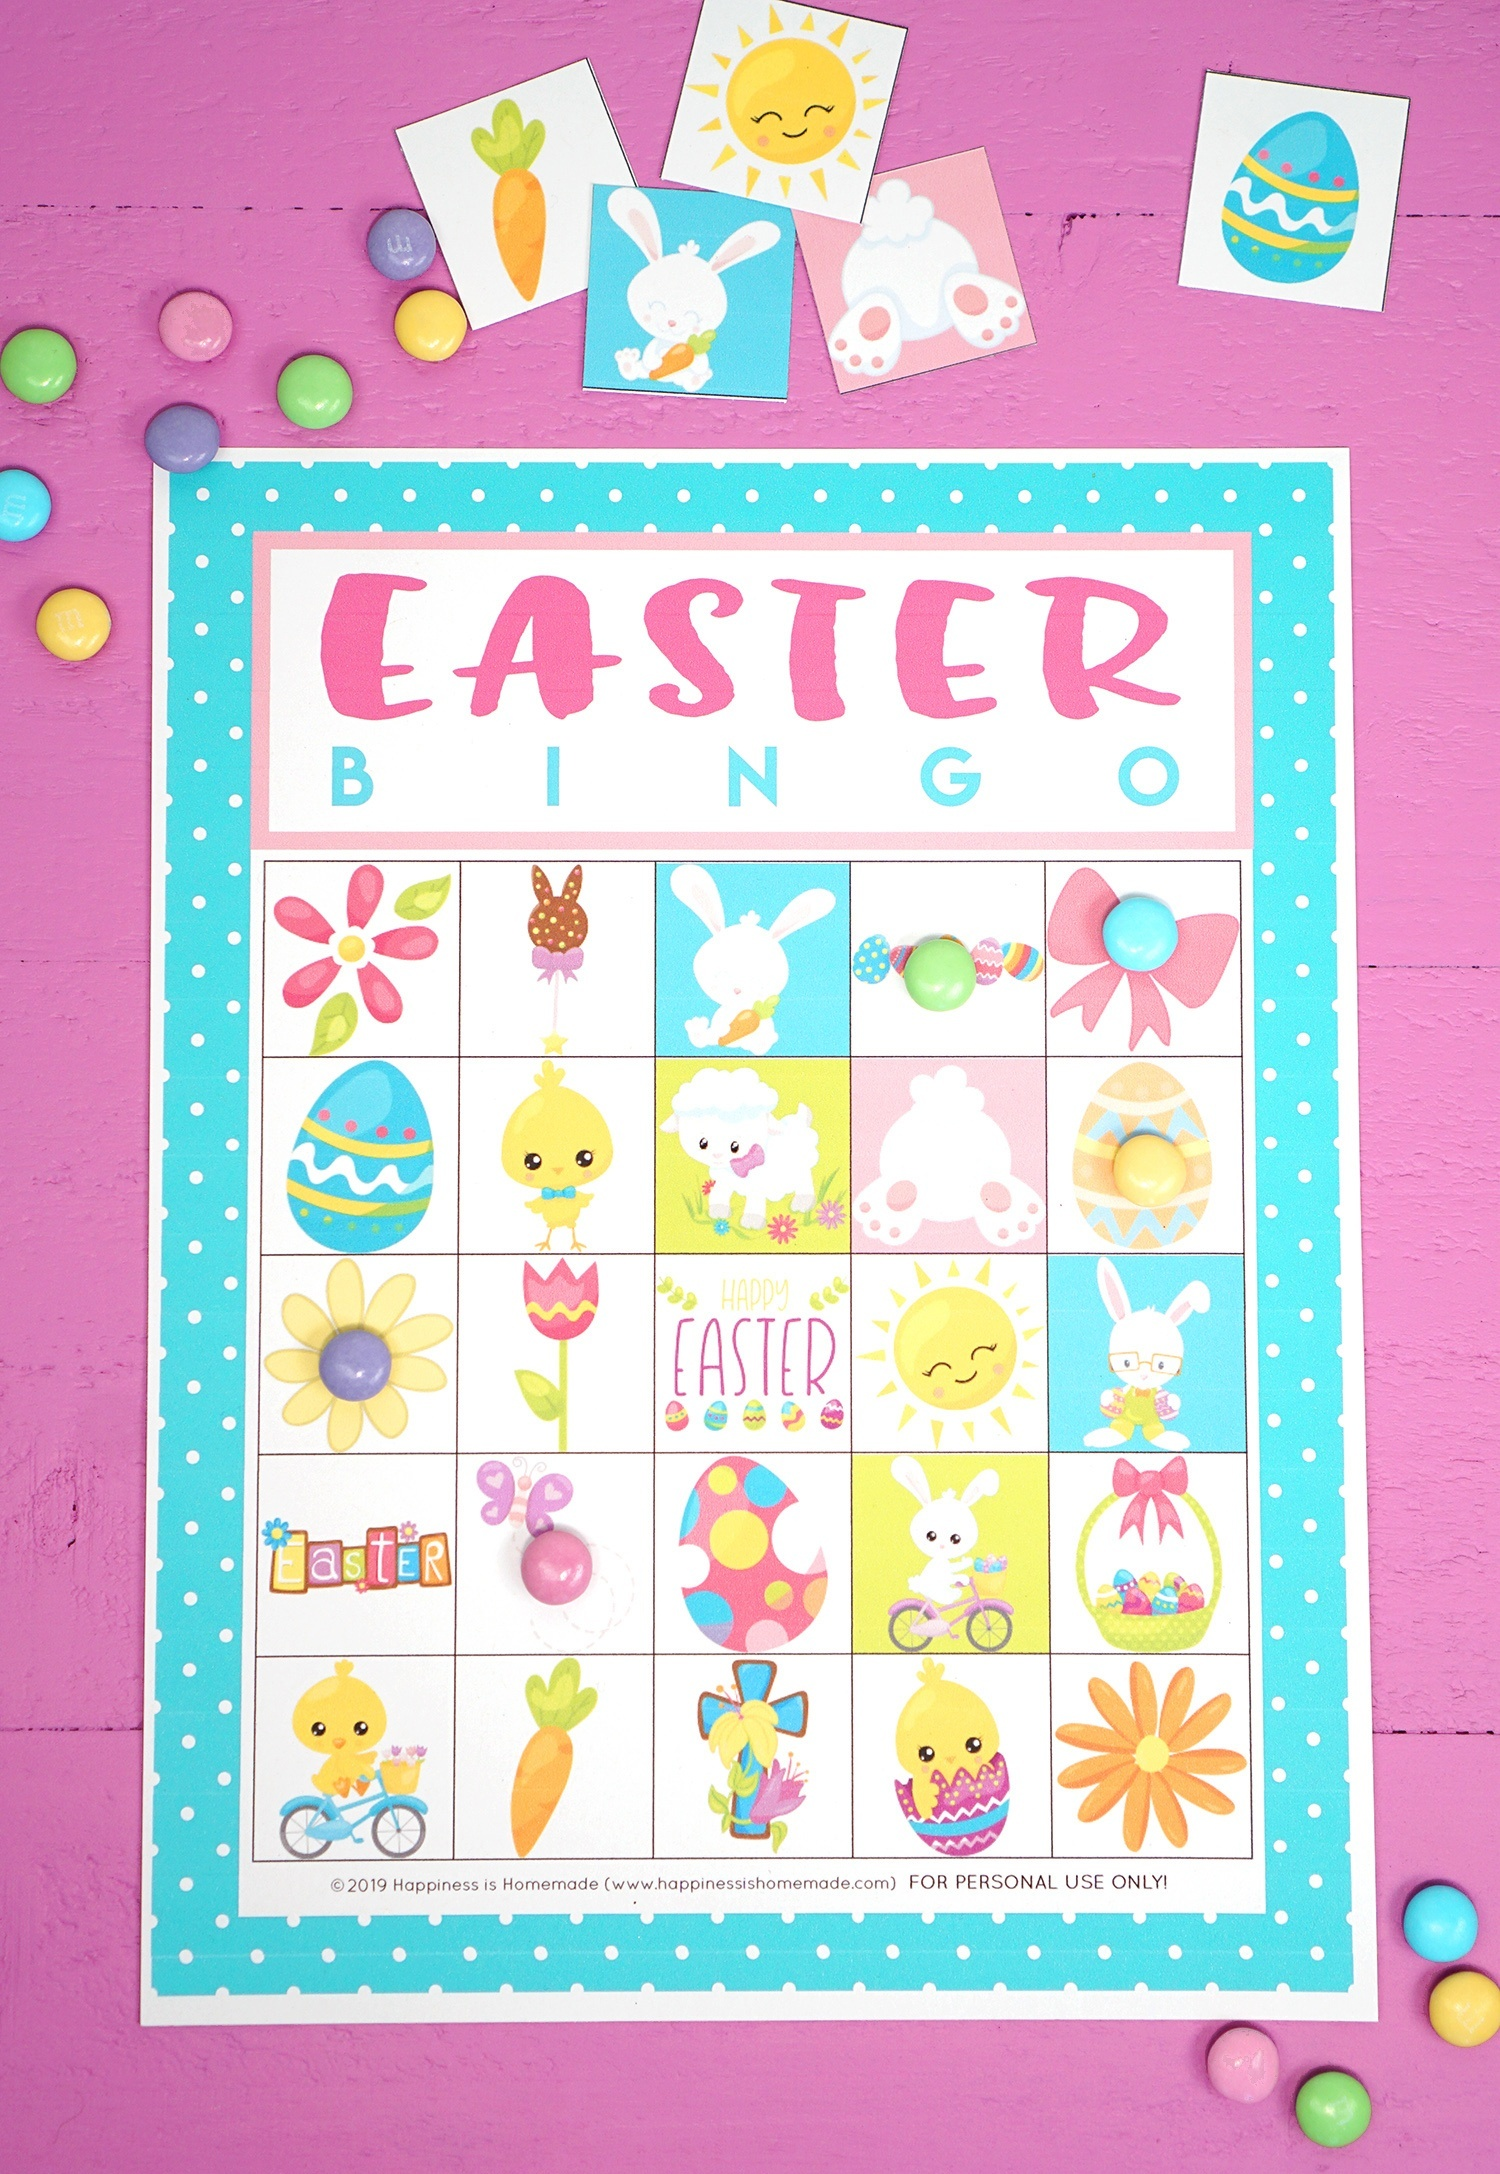 Free Printable Easter Bingo Game Cards - Happiness Is Homemade - Free Printable Bingo